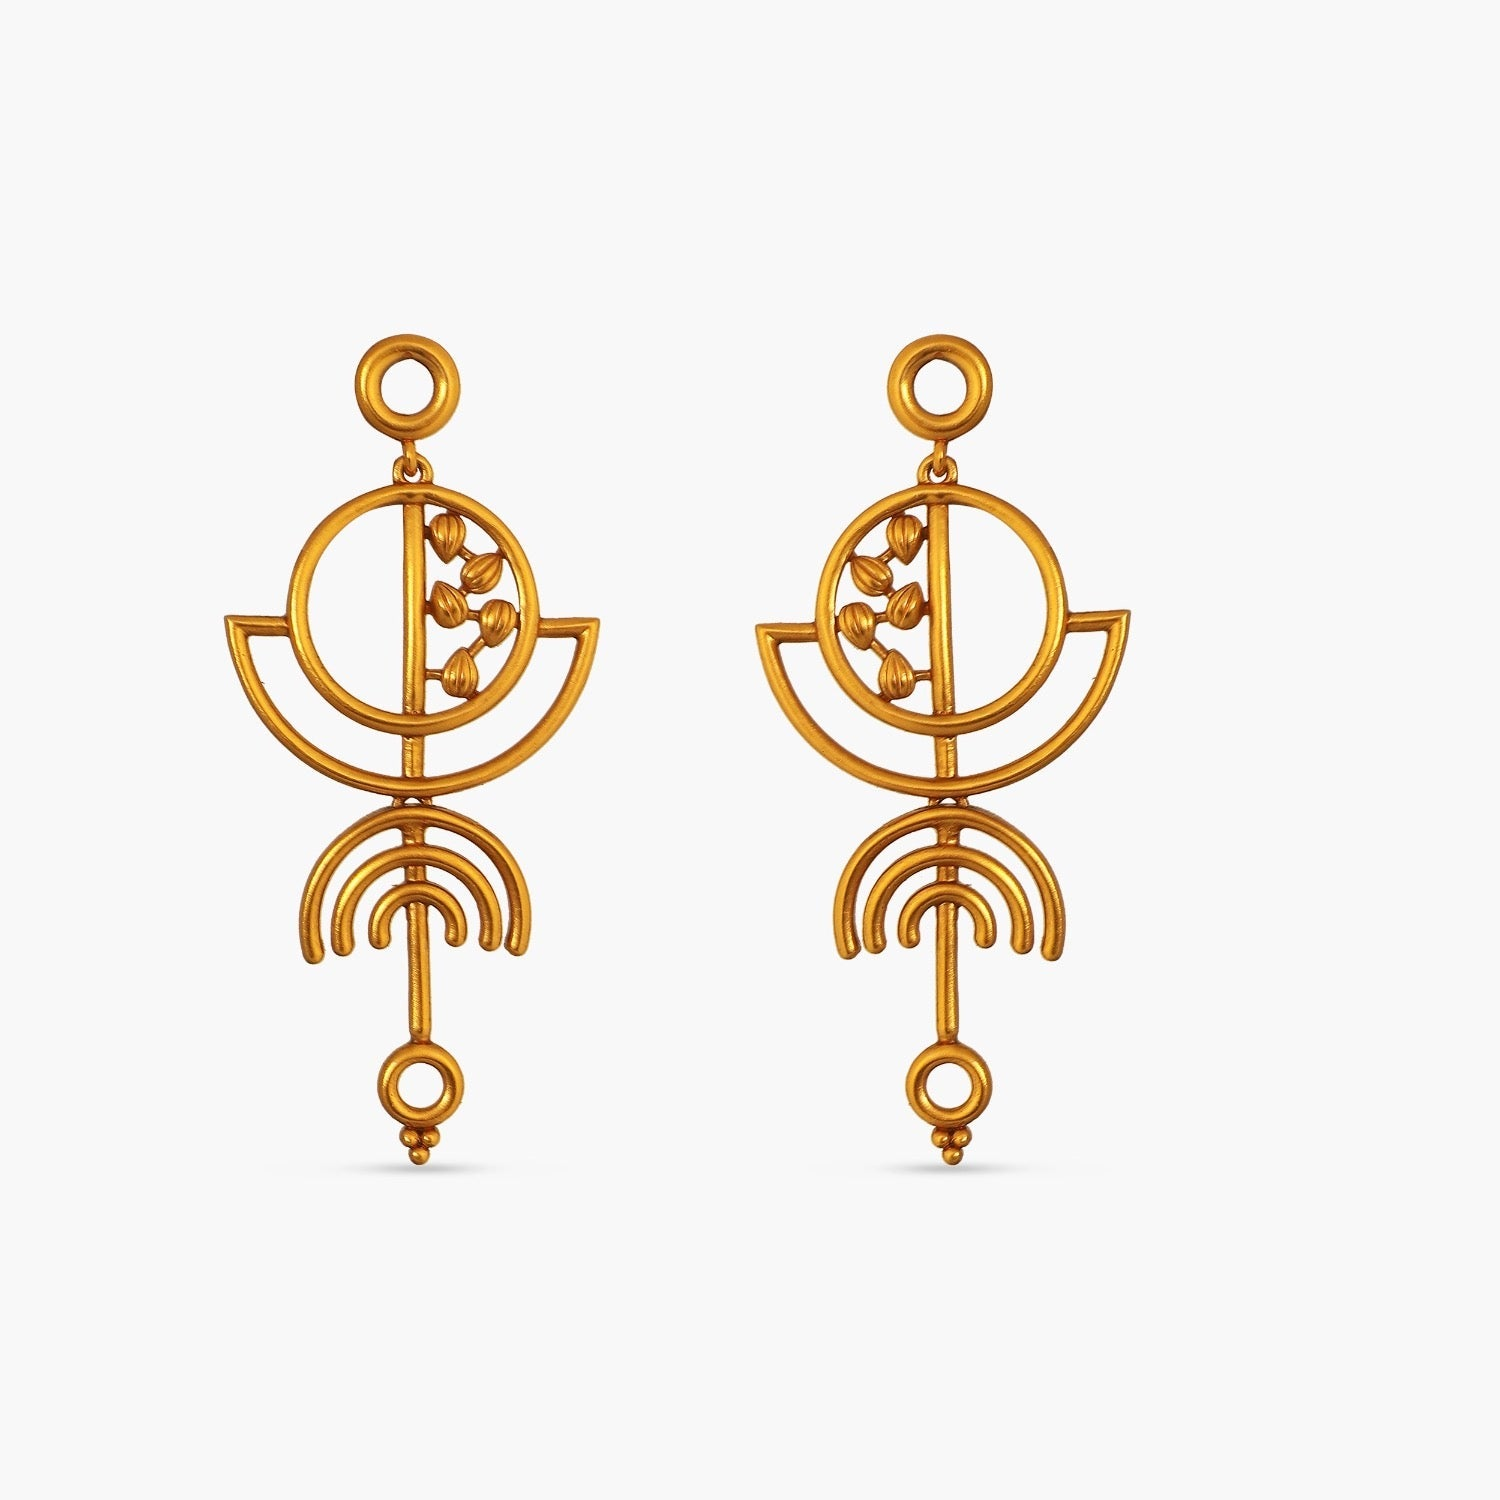 Round Geometric Statement Earrings